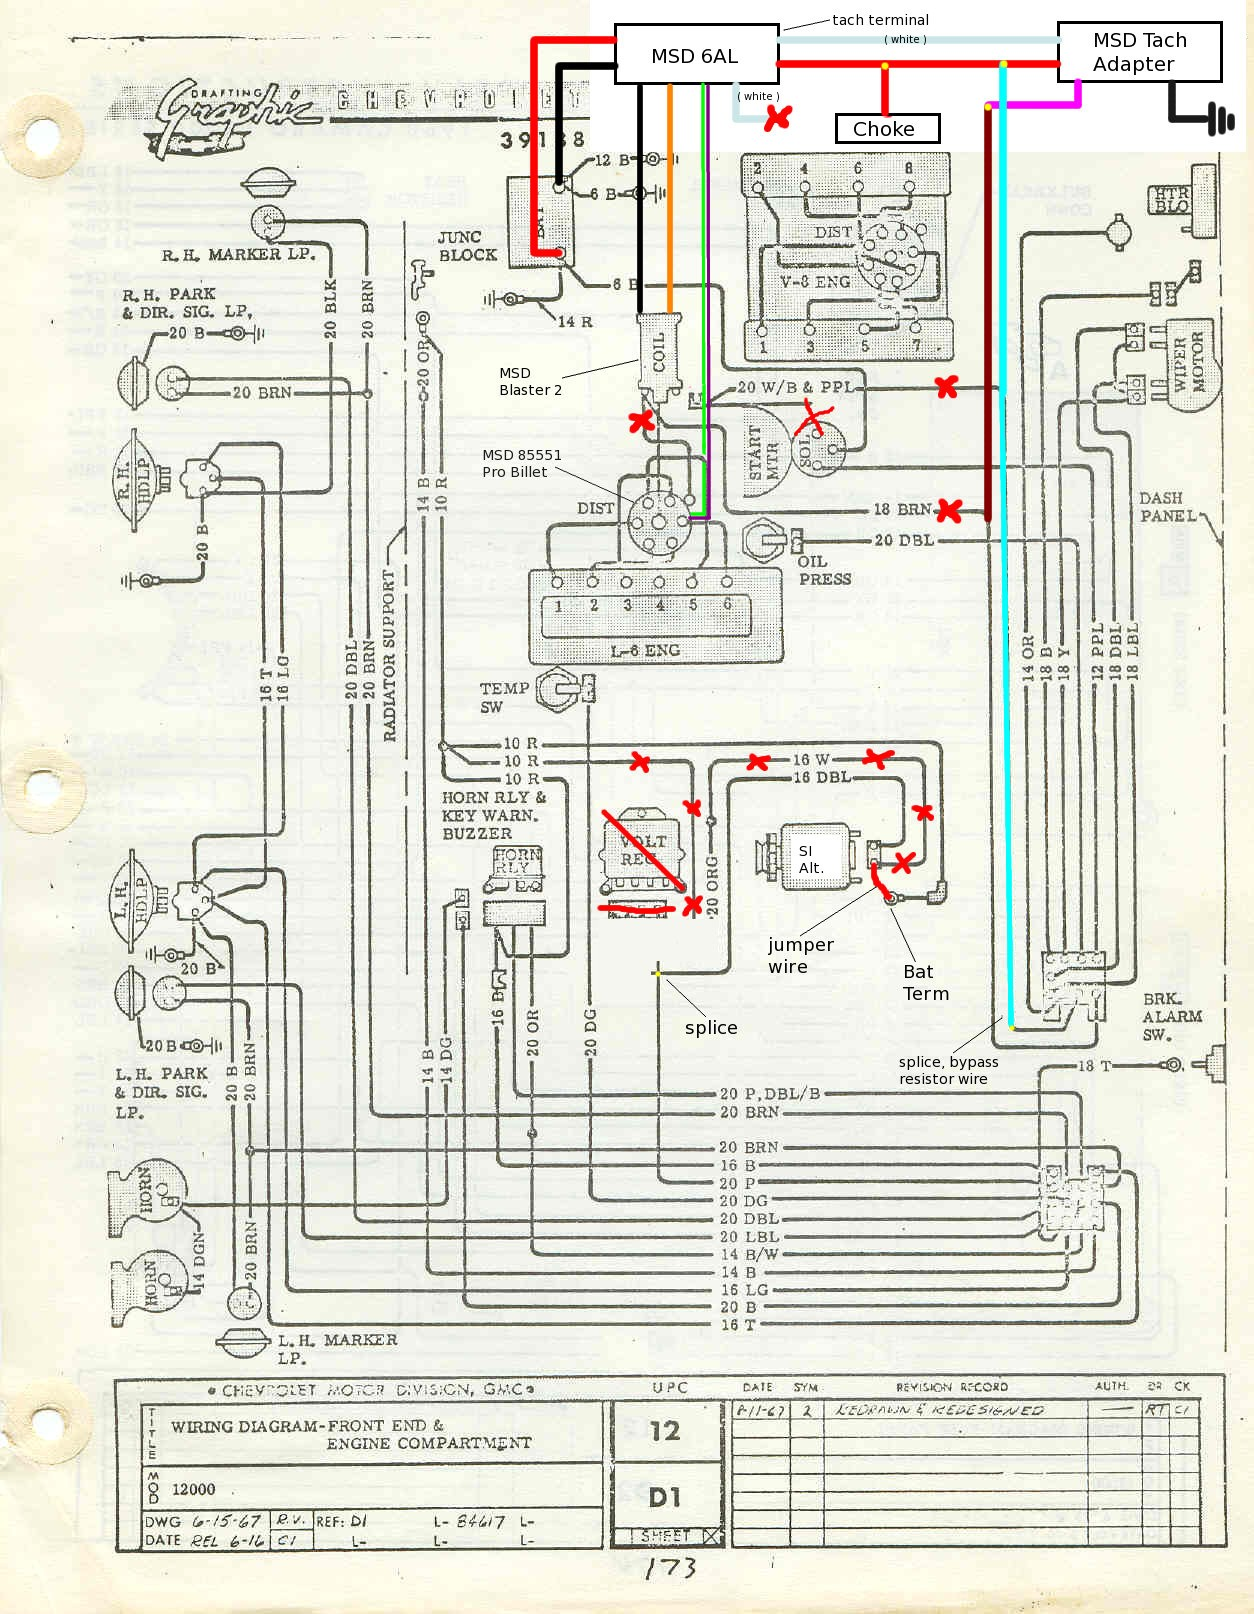 1968 camaro ignition key switch wire diagram free download u2022 oasis dl  co rh oasis dl co 1968 Camaro Wiring Diagram 1967 Camaro Wiring Harness  Diagram